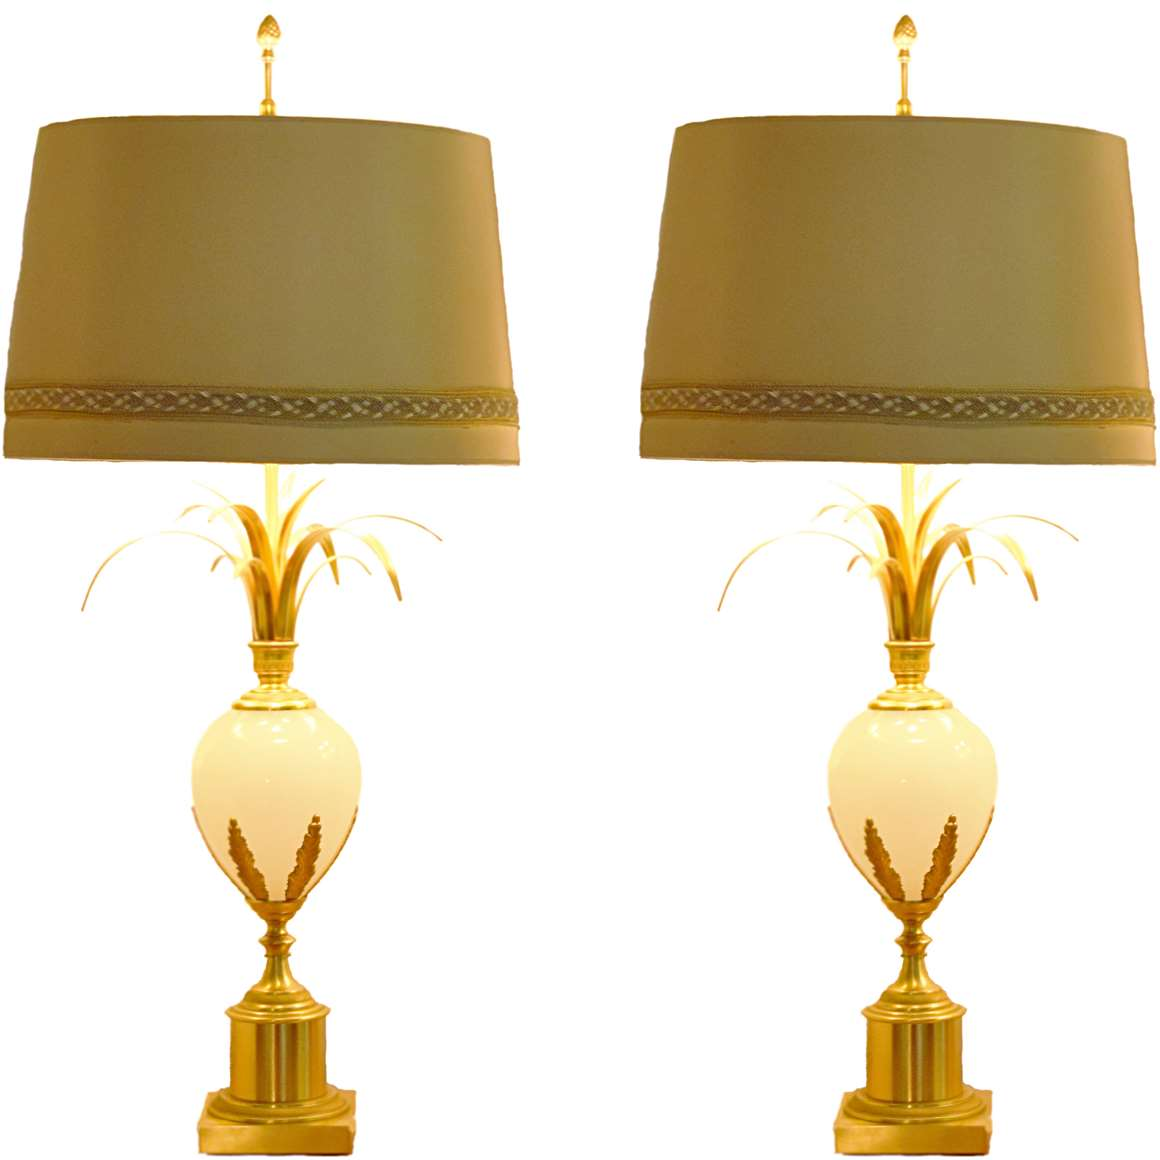 Boulanger Oyster Egg Table Lamps